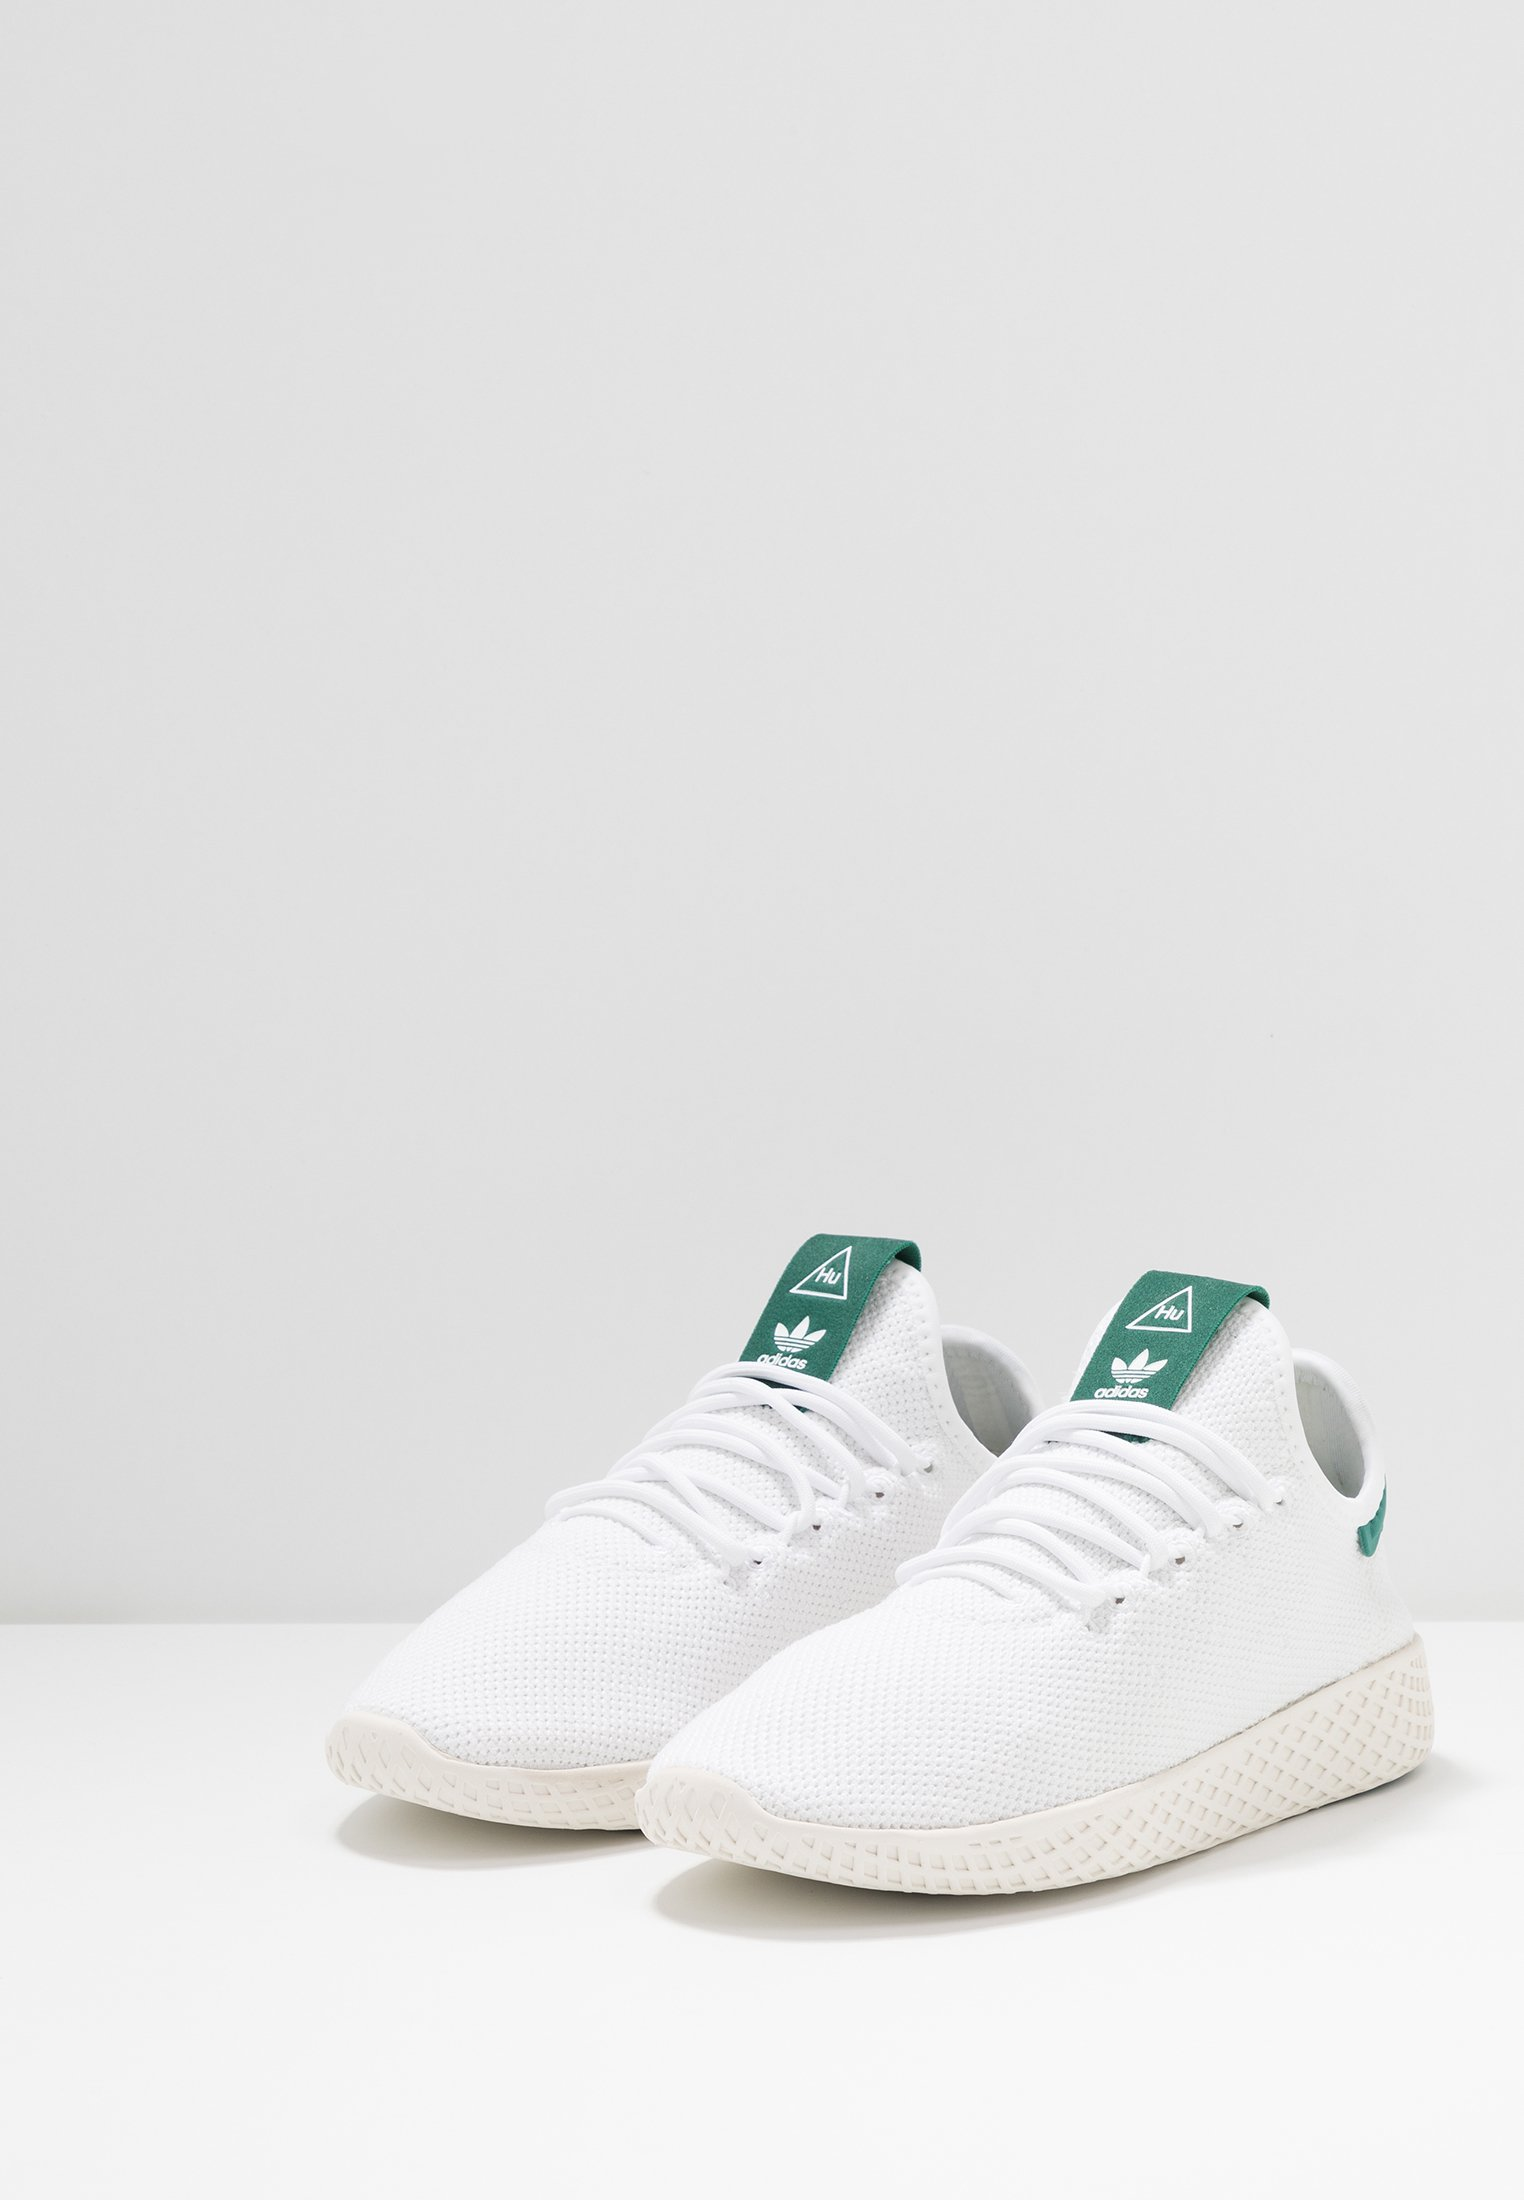 Limited New Drop Shipping Women's Shoes adidas Originals PW TENNIS HU Trainers footwear white/offwhite/collegiate green zTTYz01MW CoD6PT08E